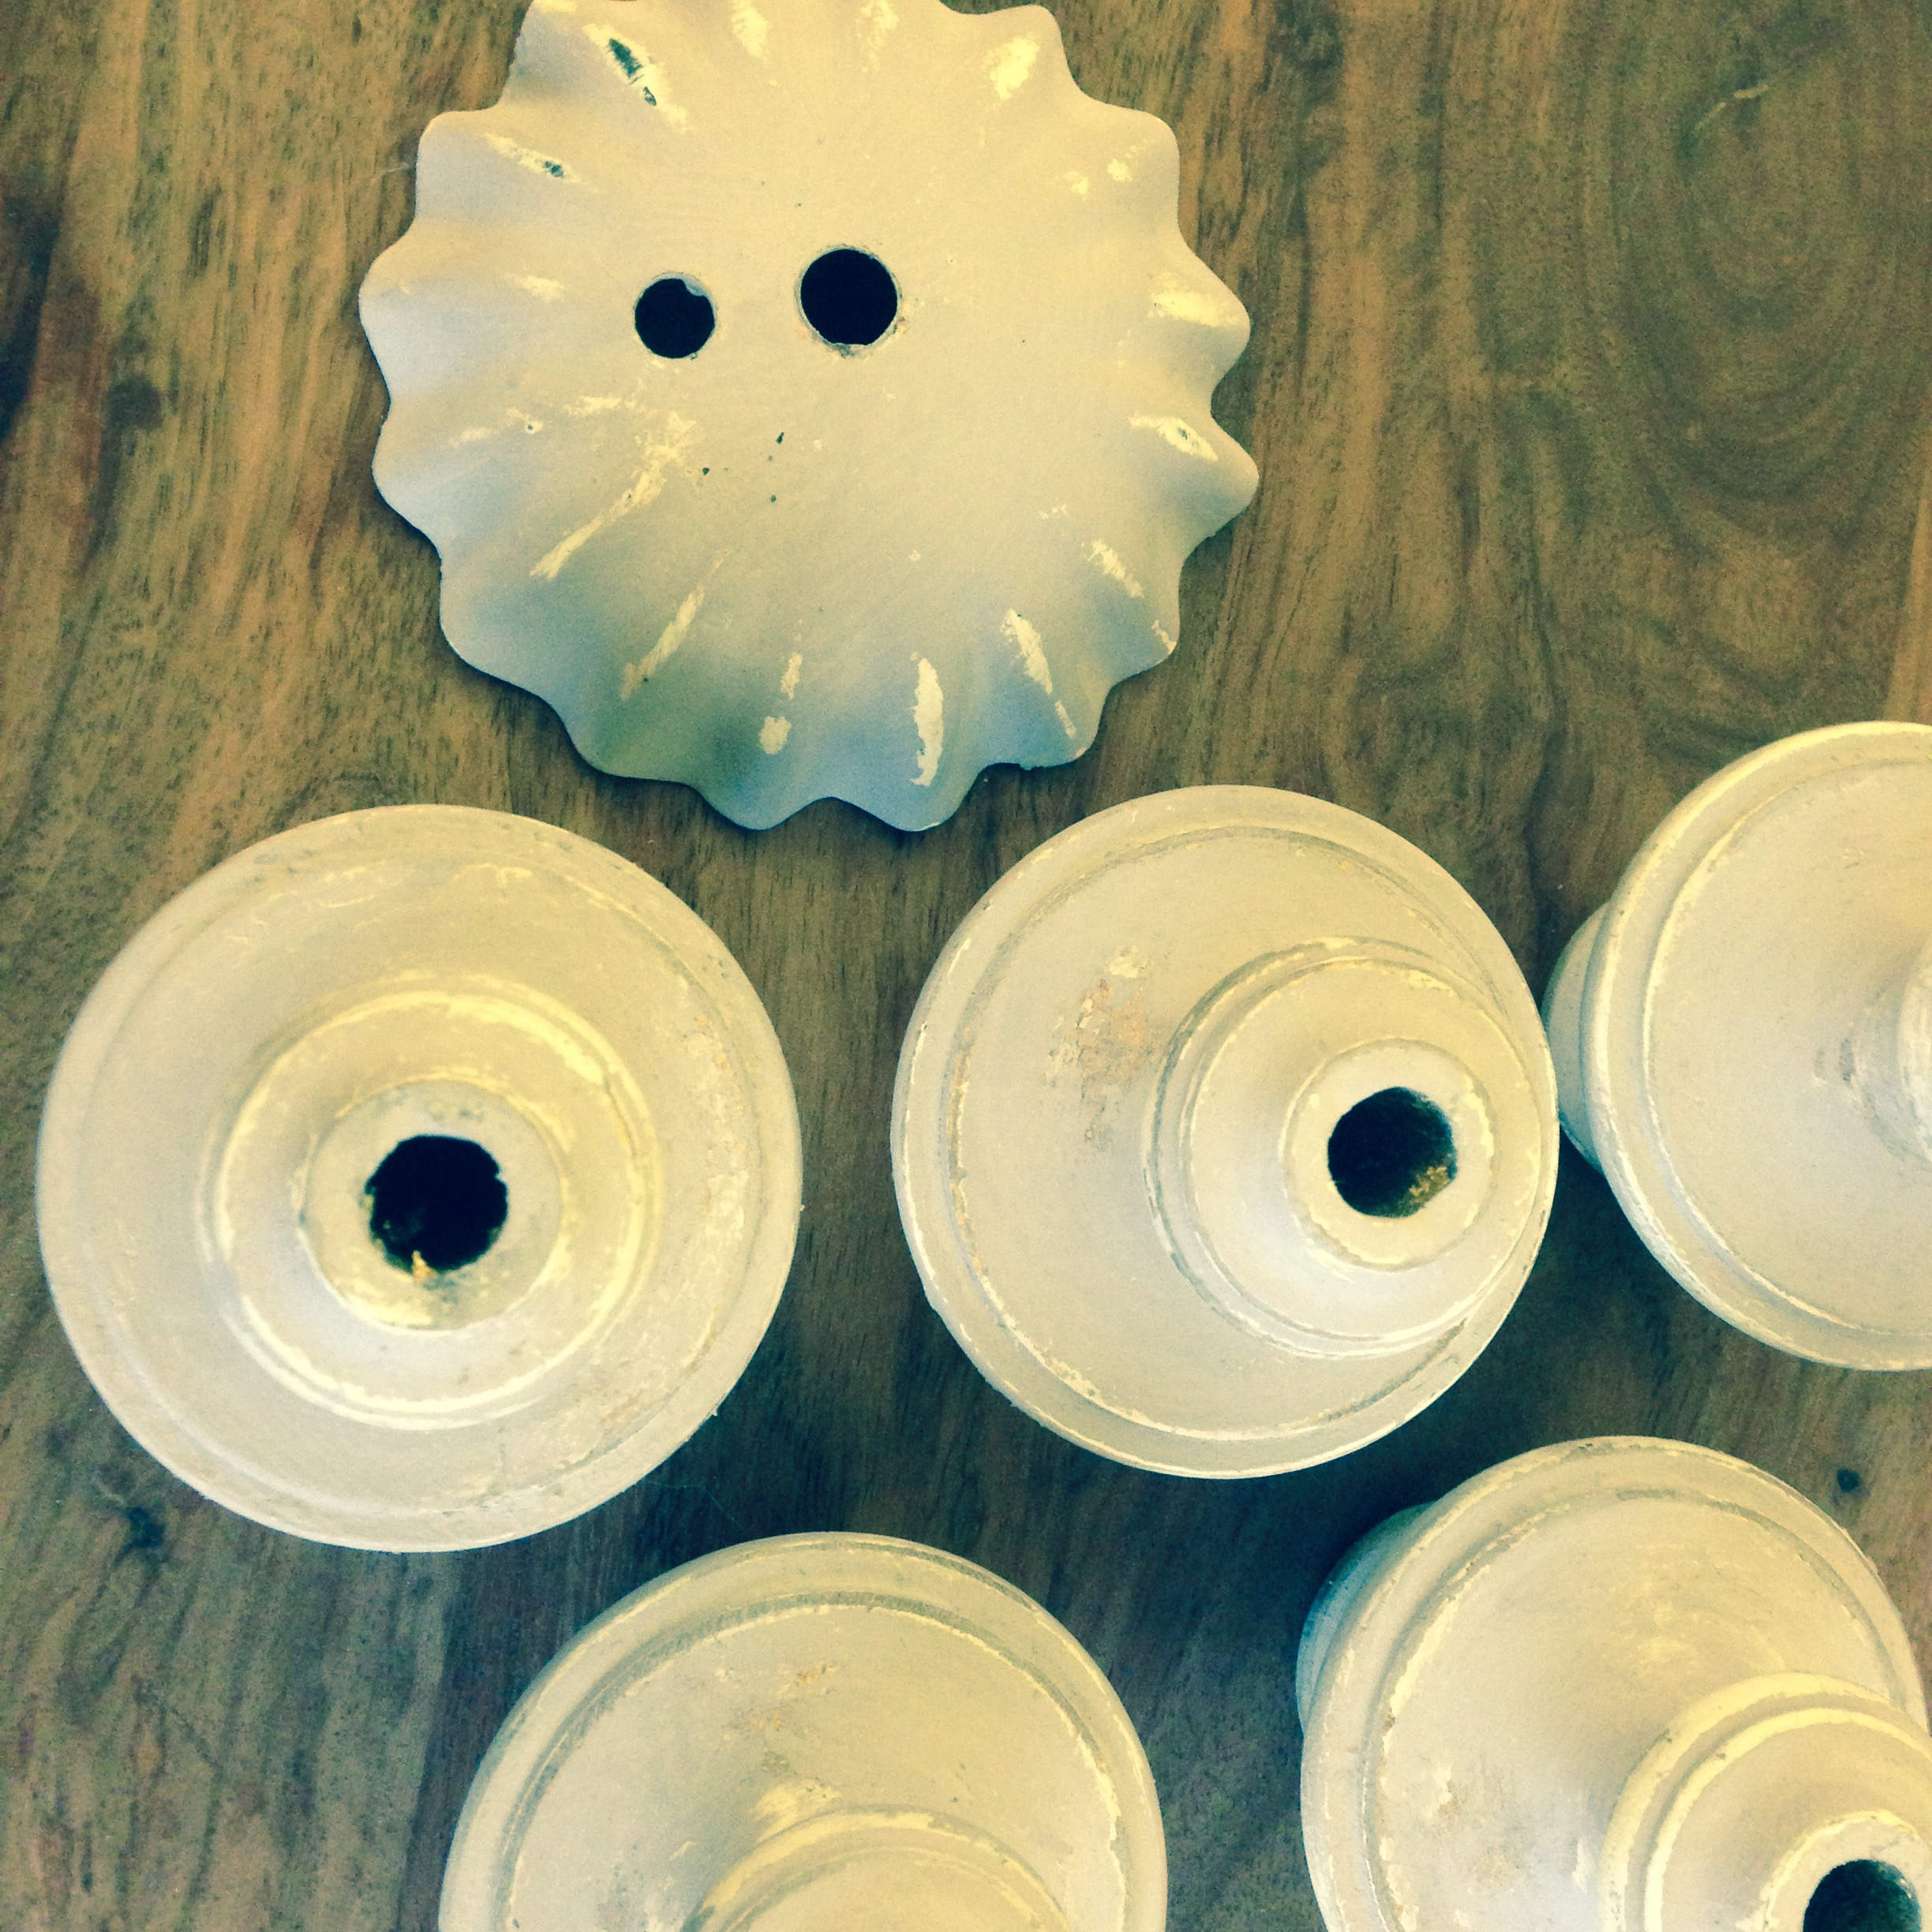 These are the candle holders, 6 in all painted and ready to go